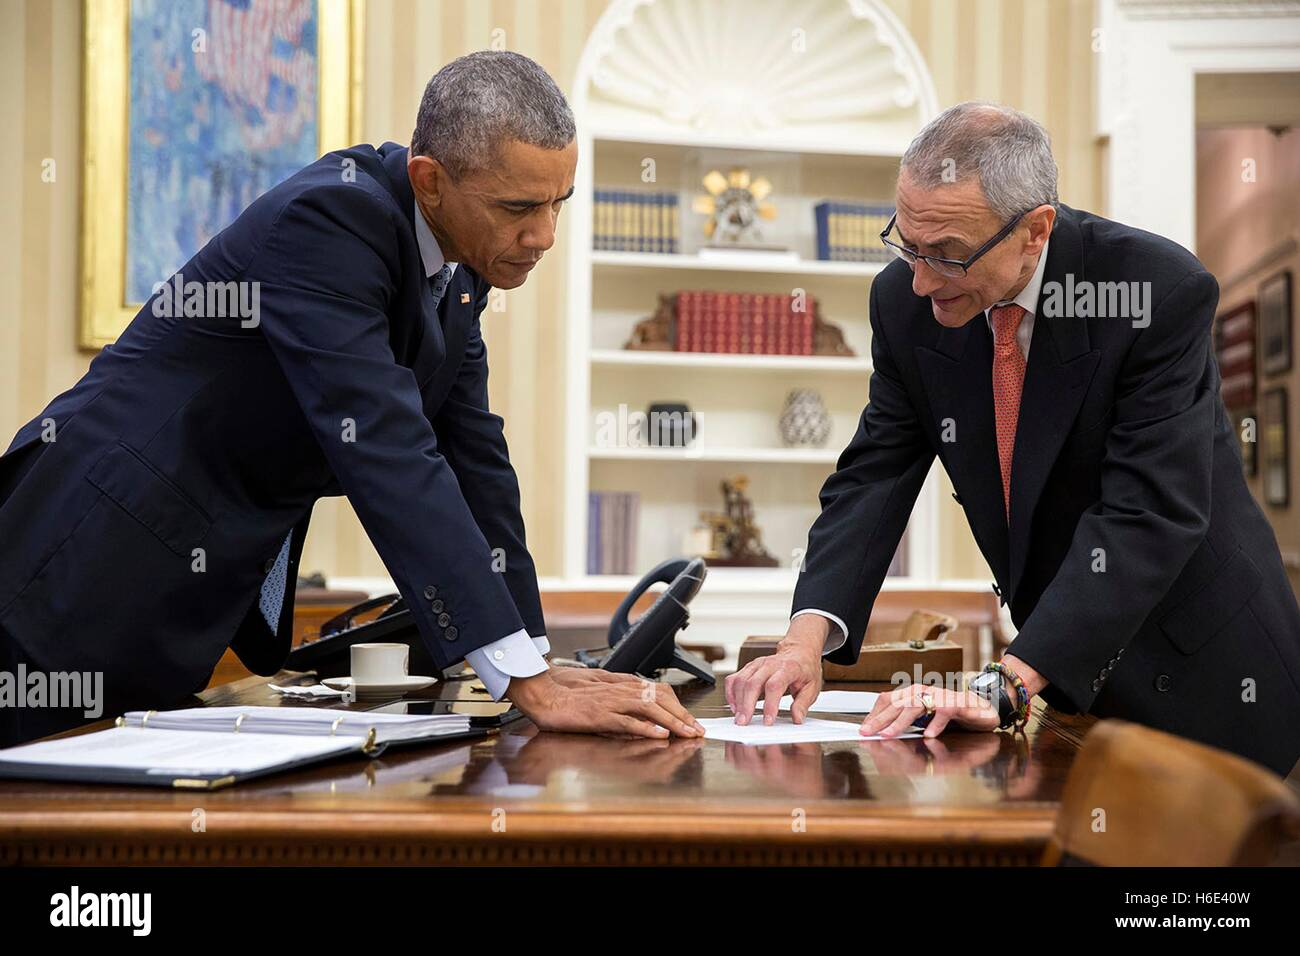 U.S. President Barack Obama and presidential Counselor John Podesta meet in the White House Oval Office January - Stock Image